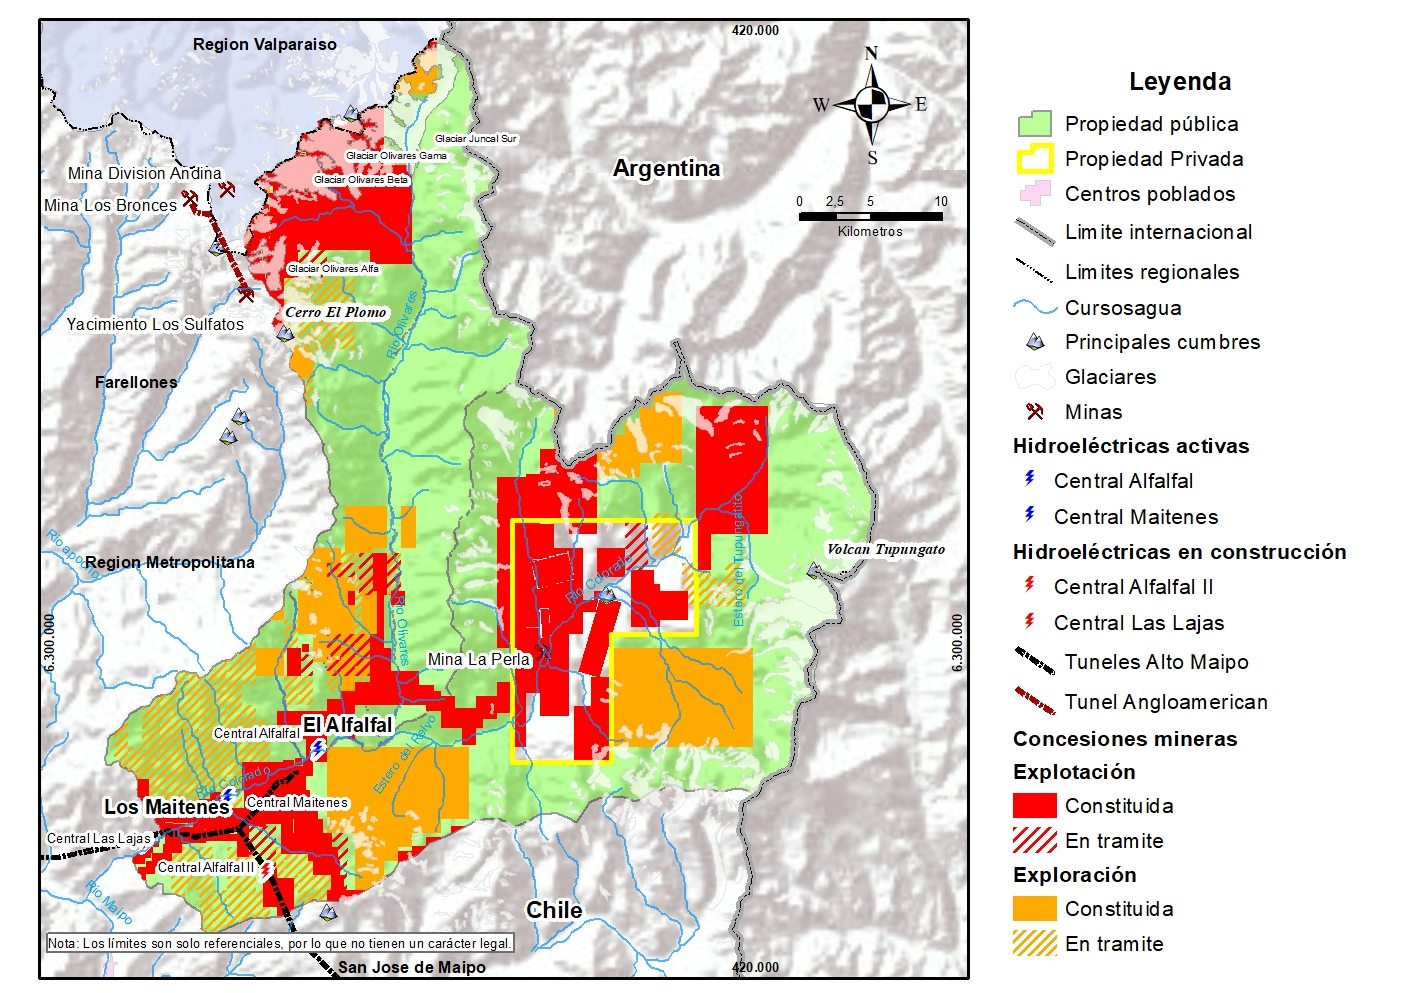 Threats (mining and hydroelectric) present and future in the Colorado-Olivares fiscal property. © Plantae Foundation